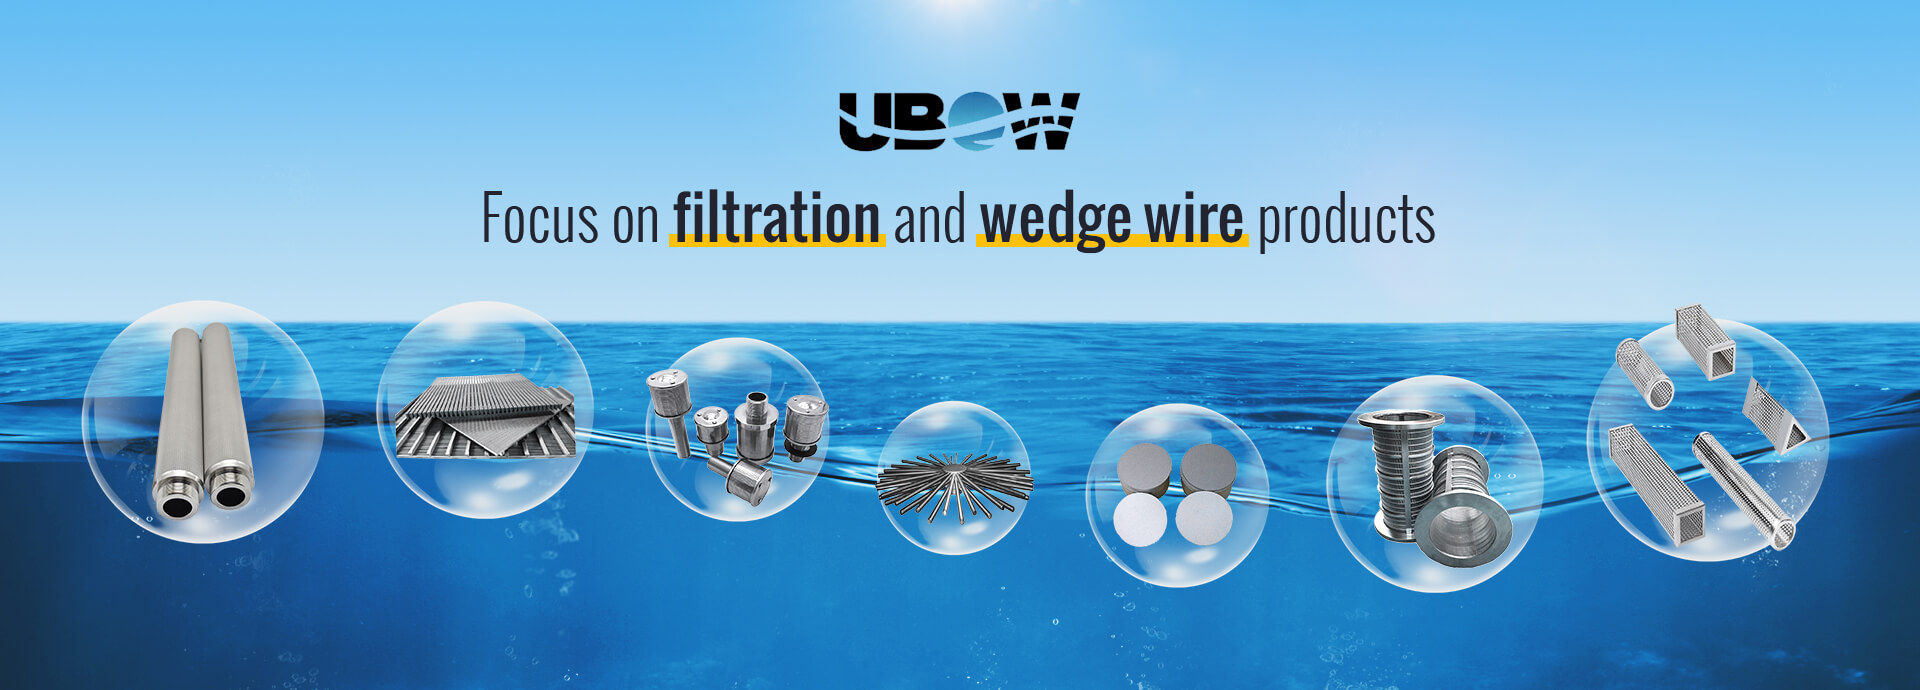 Focus on filtration and wedge wire products